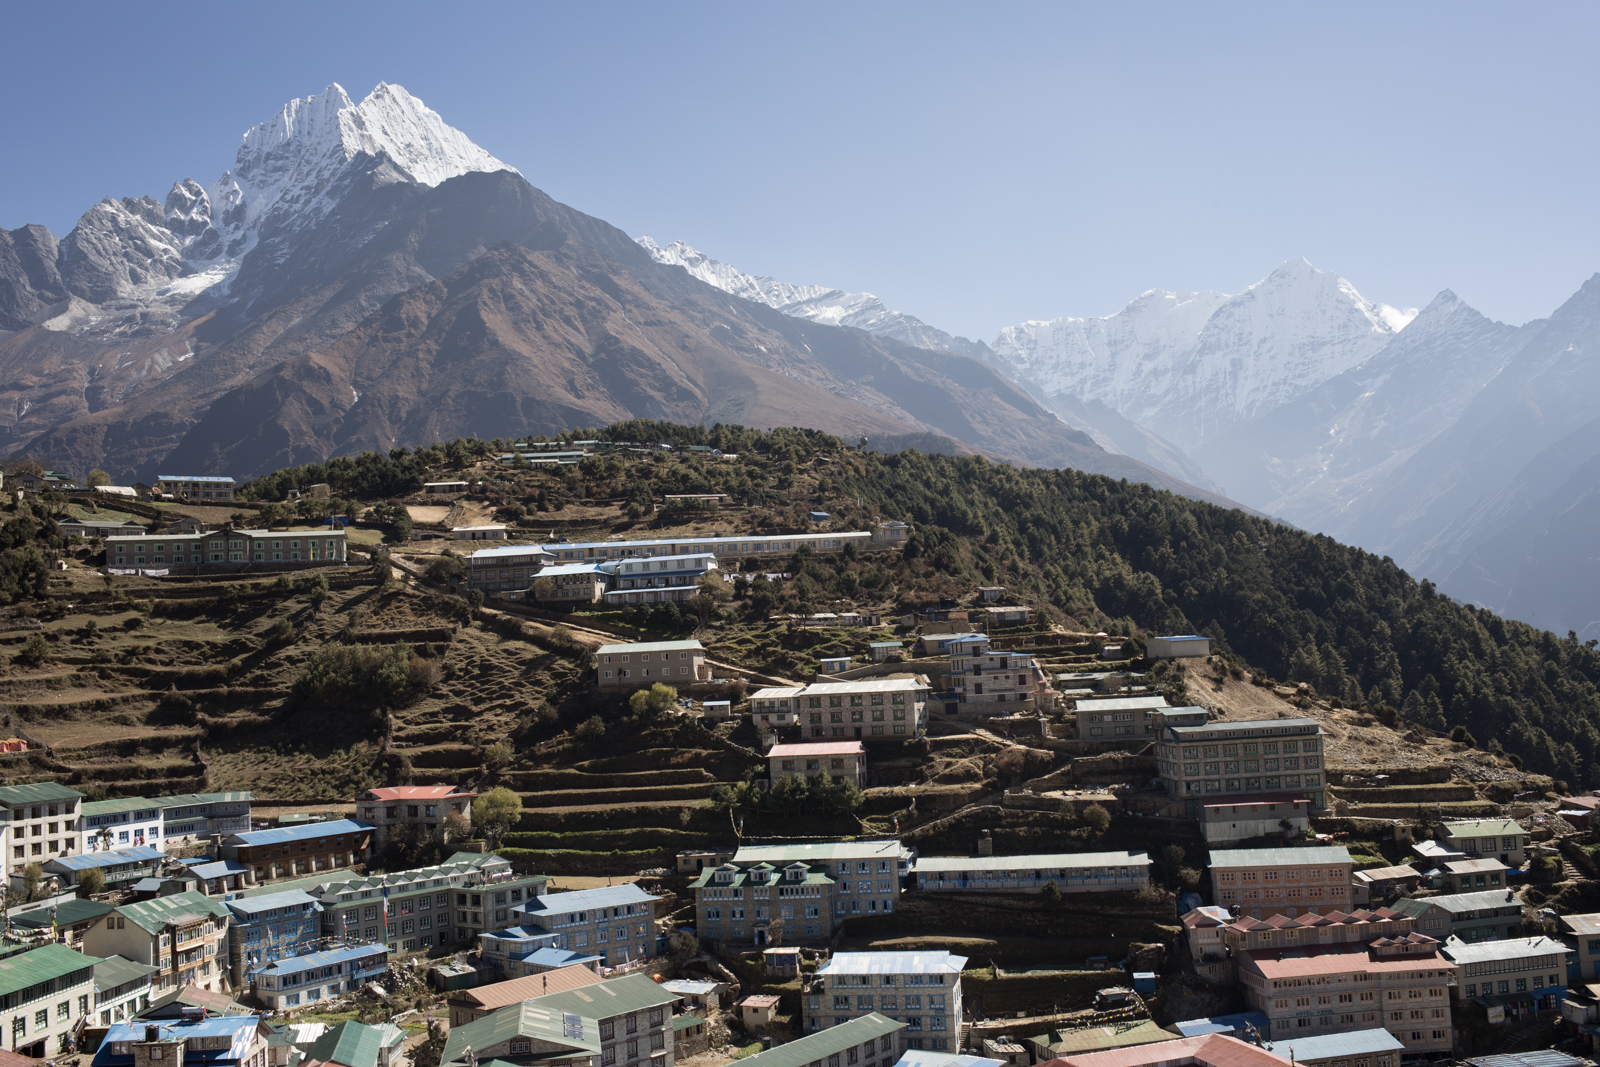 Thamserku 6,608 m and Kusum Khangkaru 6,367 m above Namche Baazar, Nepal. (Elevation credit: PeakFinder)